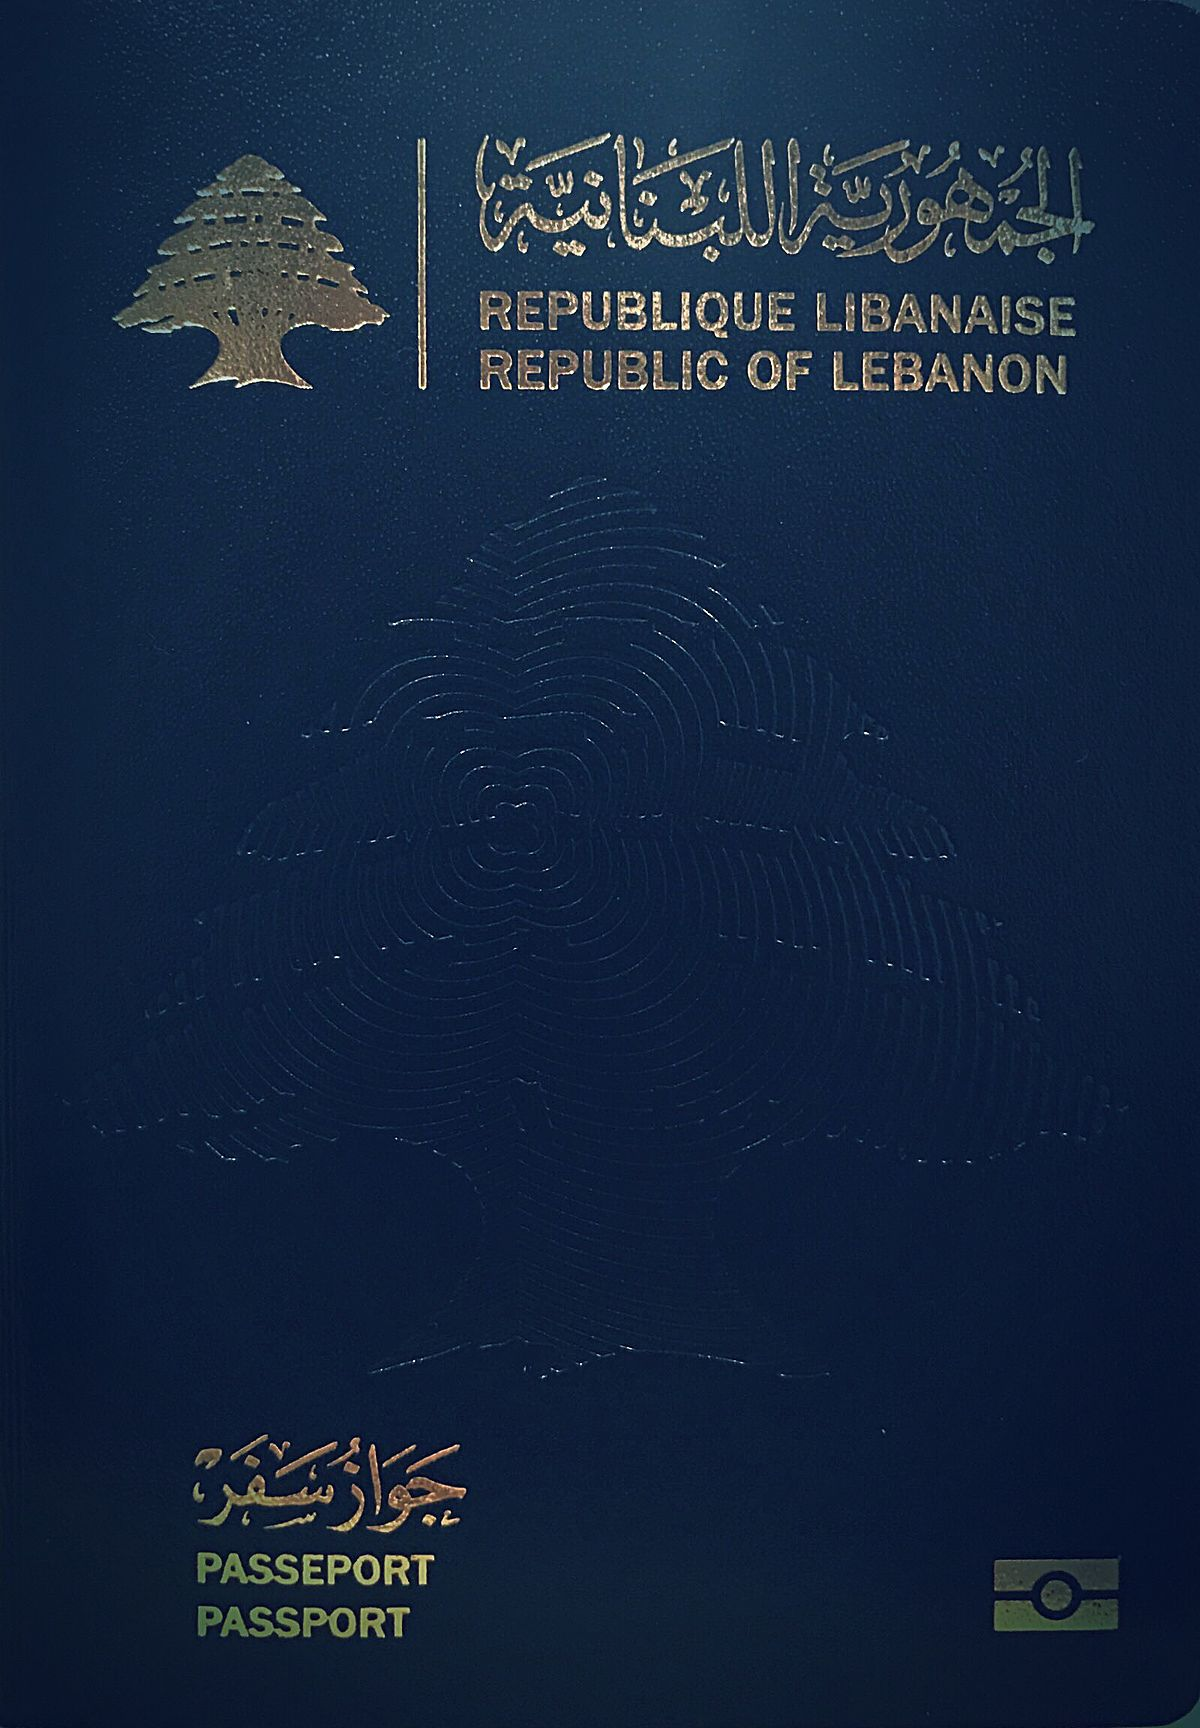 Lebanese Passport Wikipedia